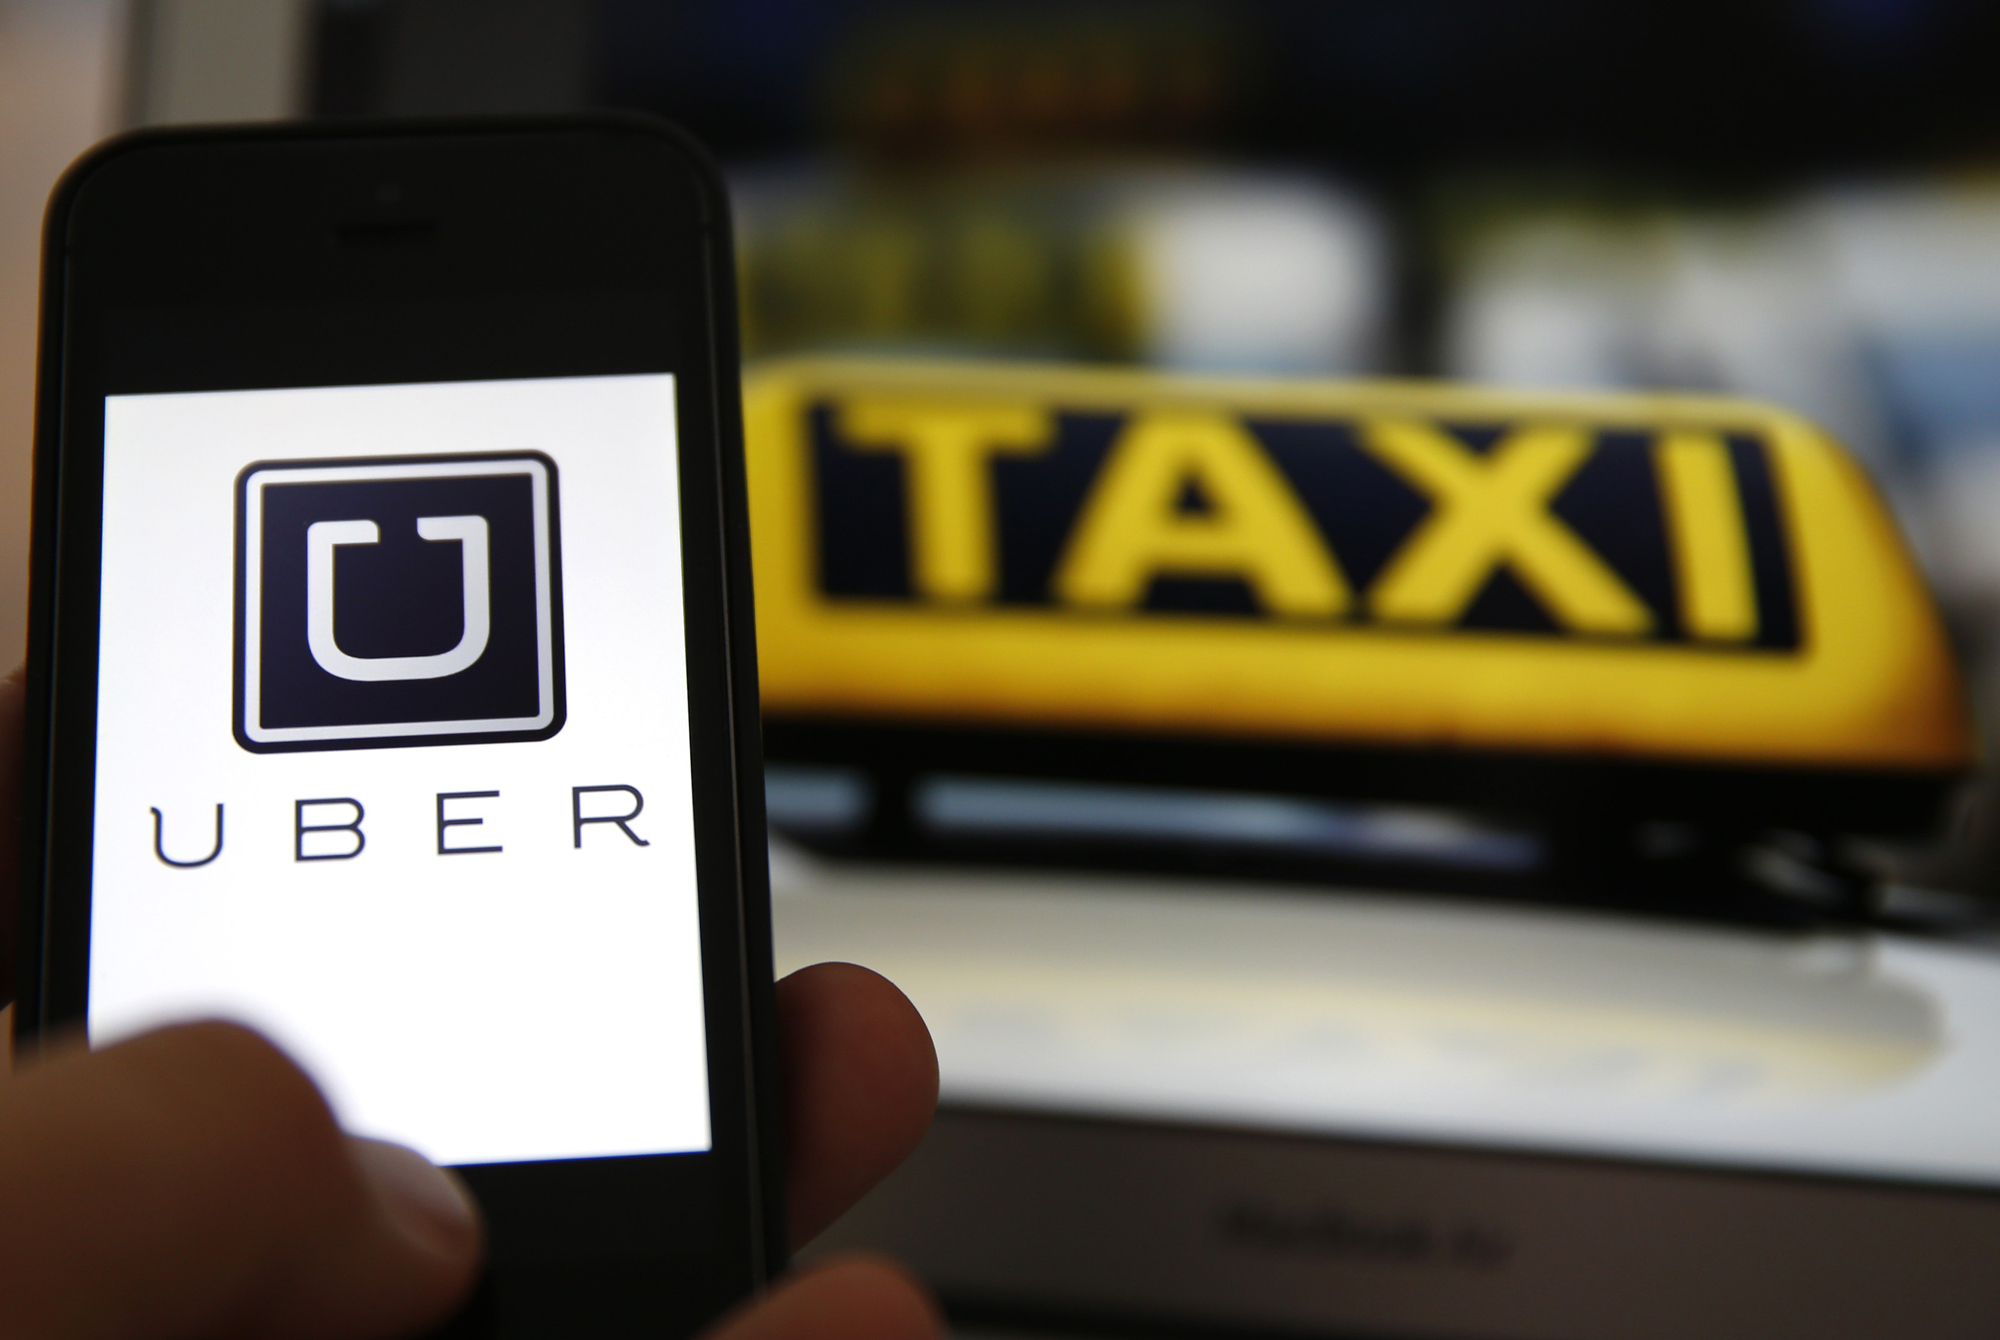 Uber pays off hackers to conceal data breach of 57 million users